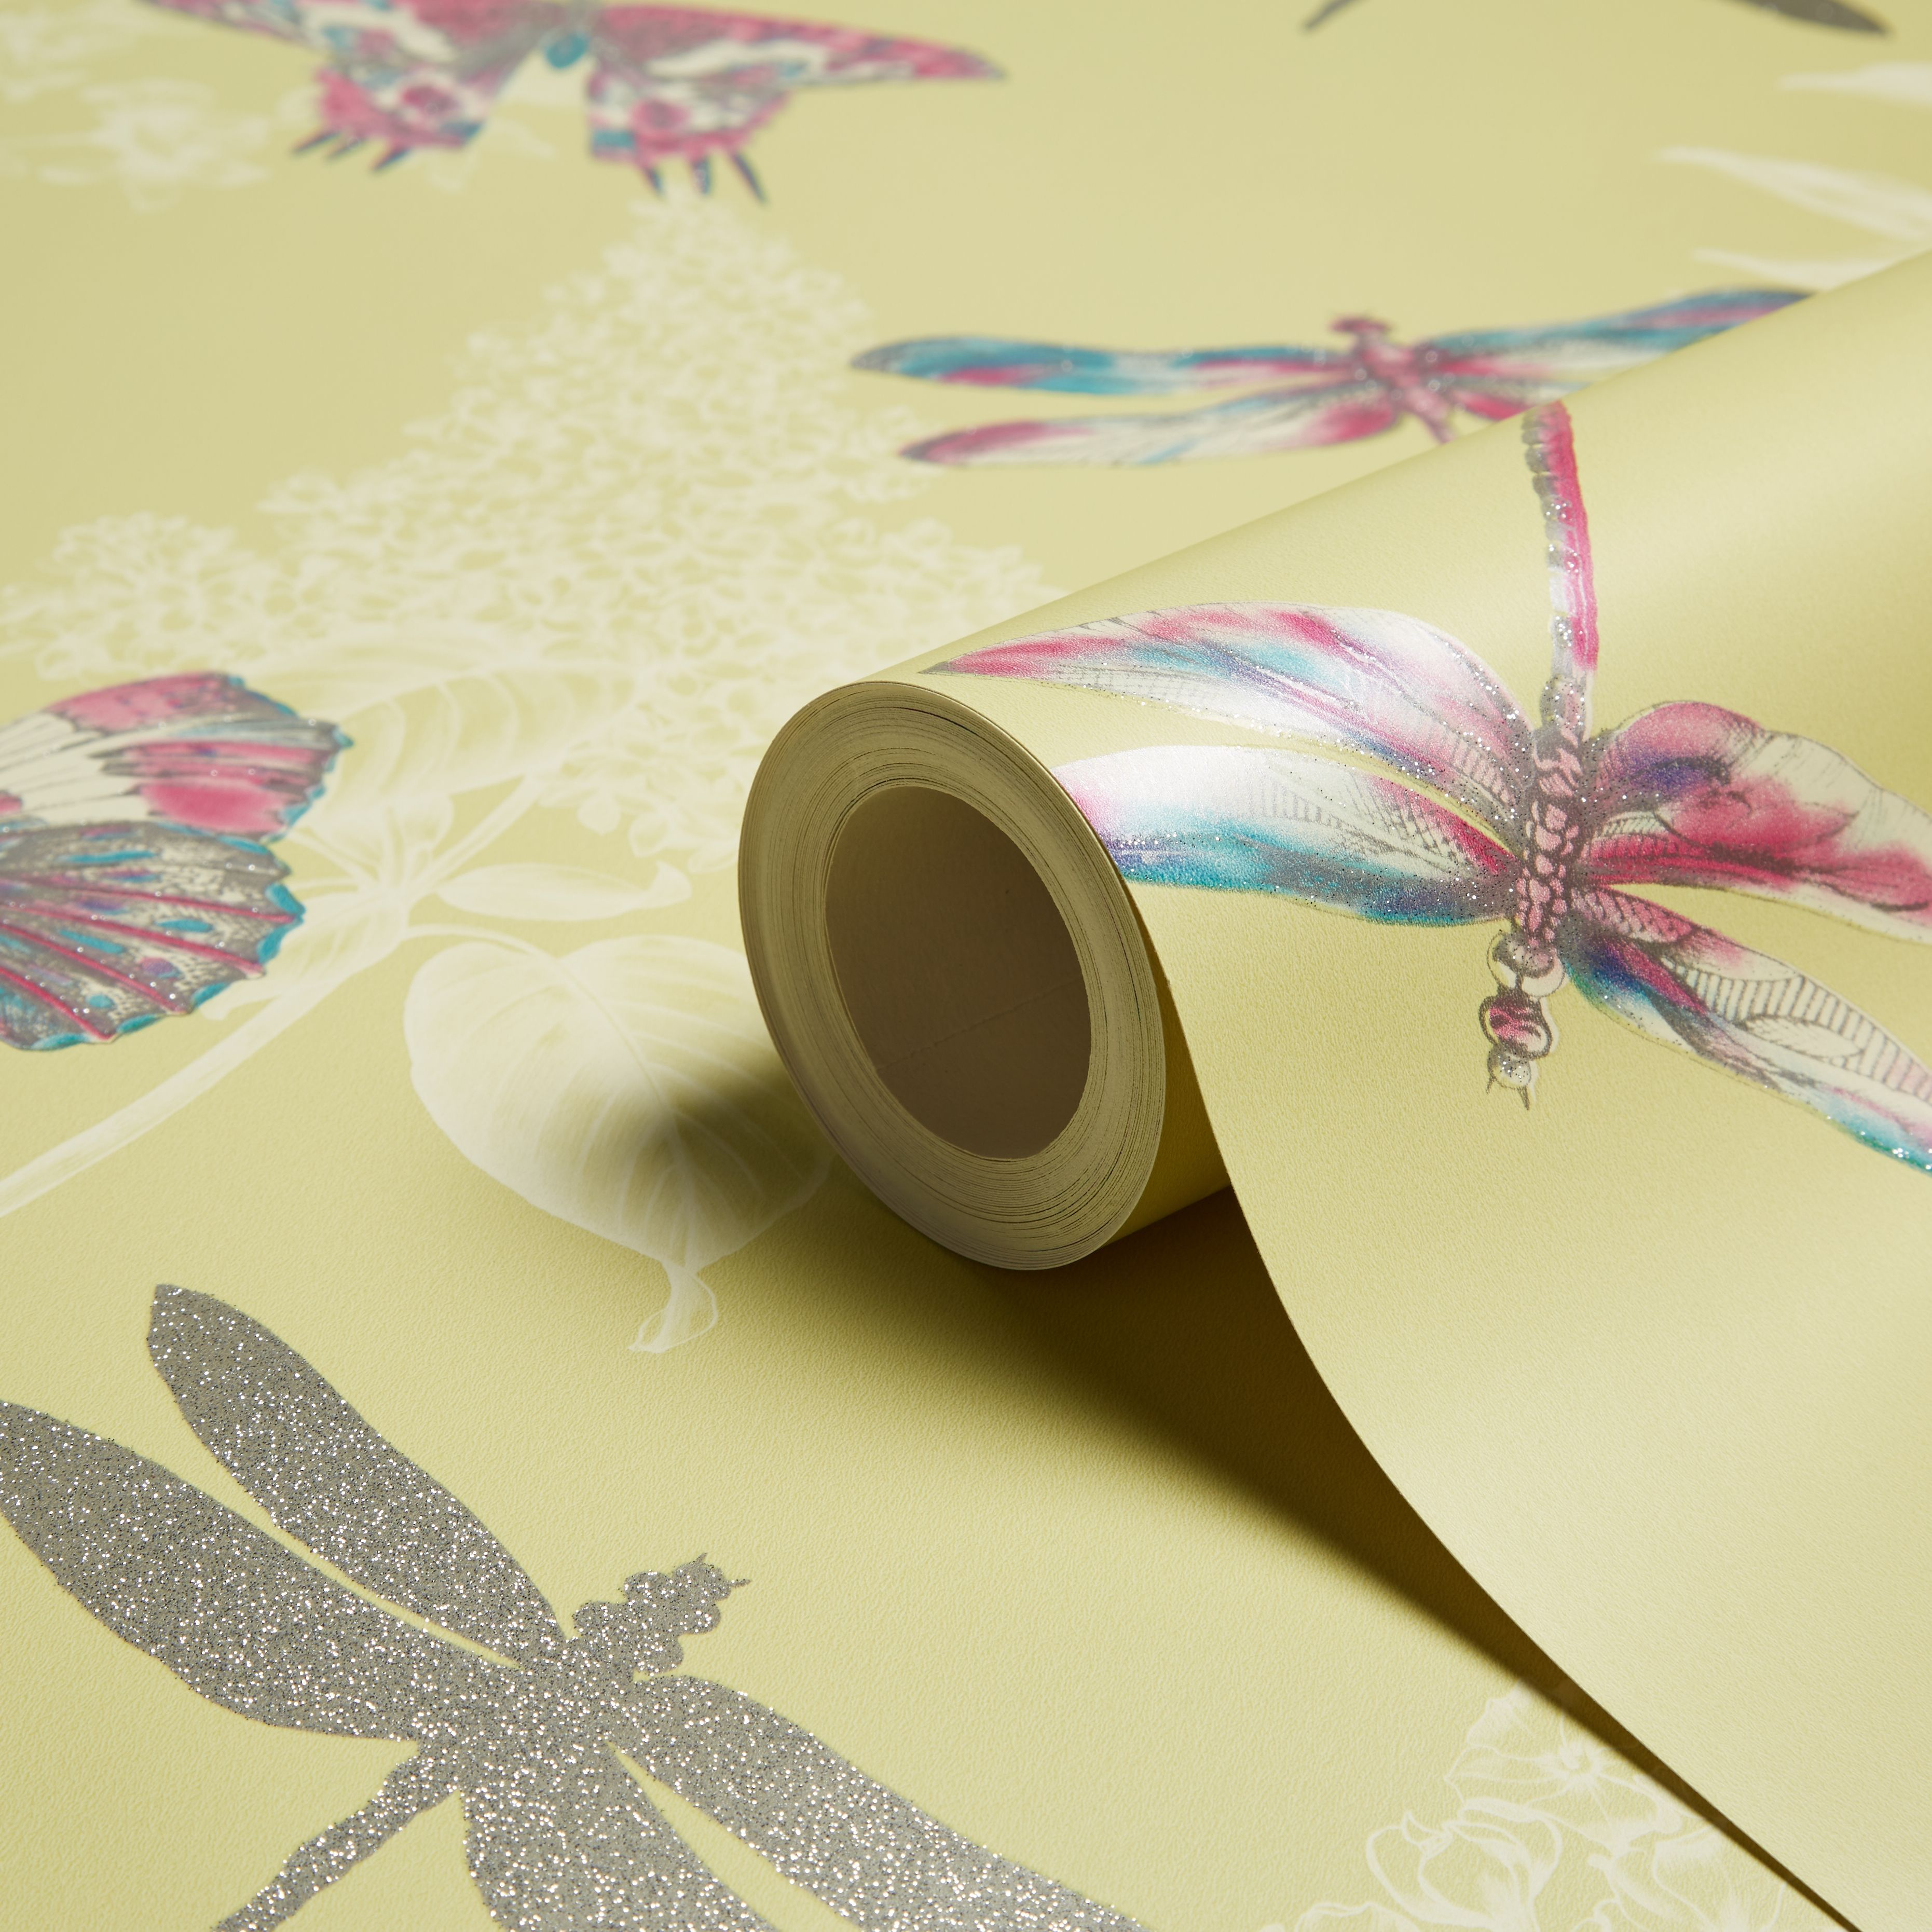 Diy supplies accessories diy at b q - Arthouse Enchanted Wings Citrus Insects Glitter Effect Wallpaper